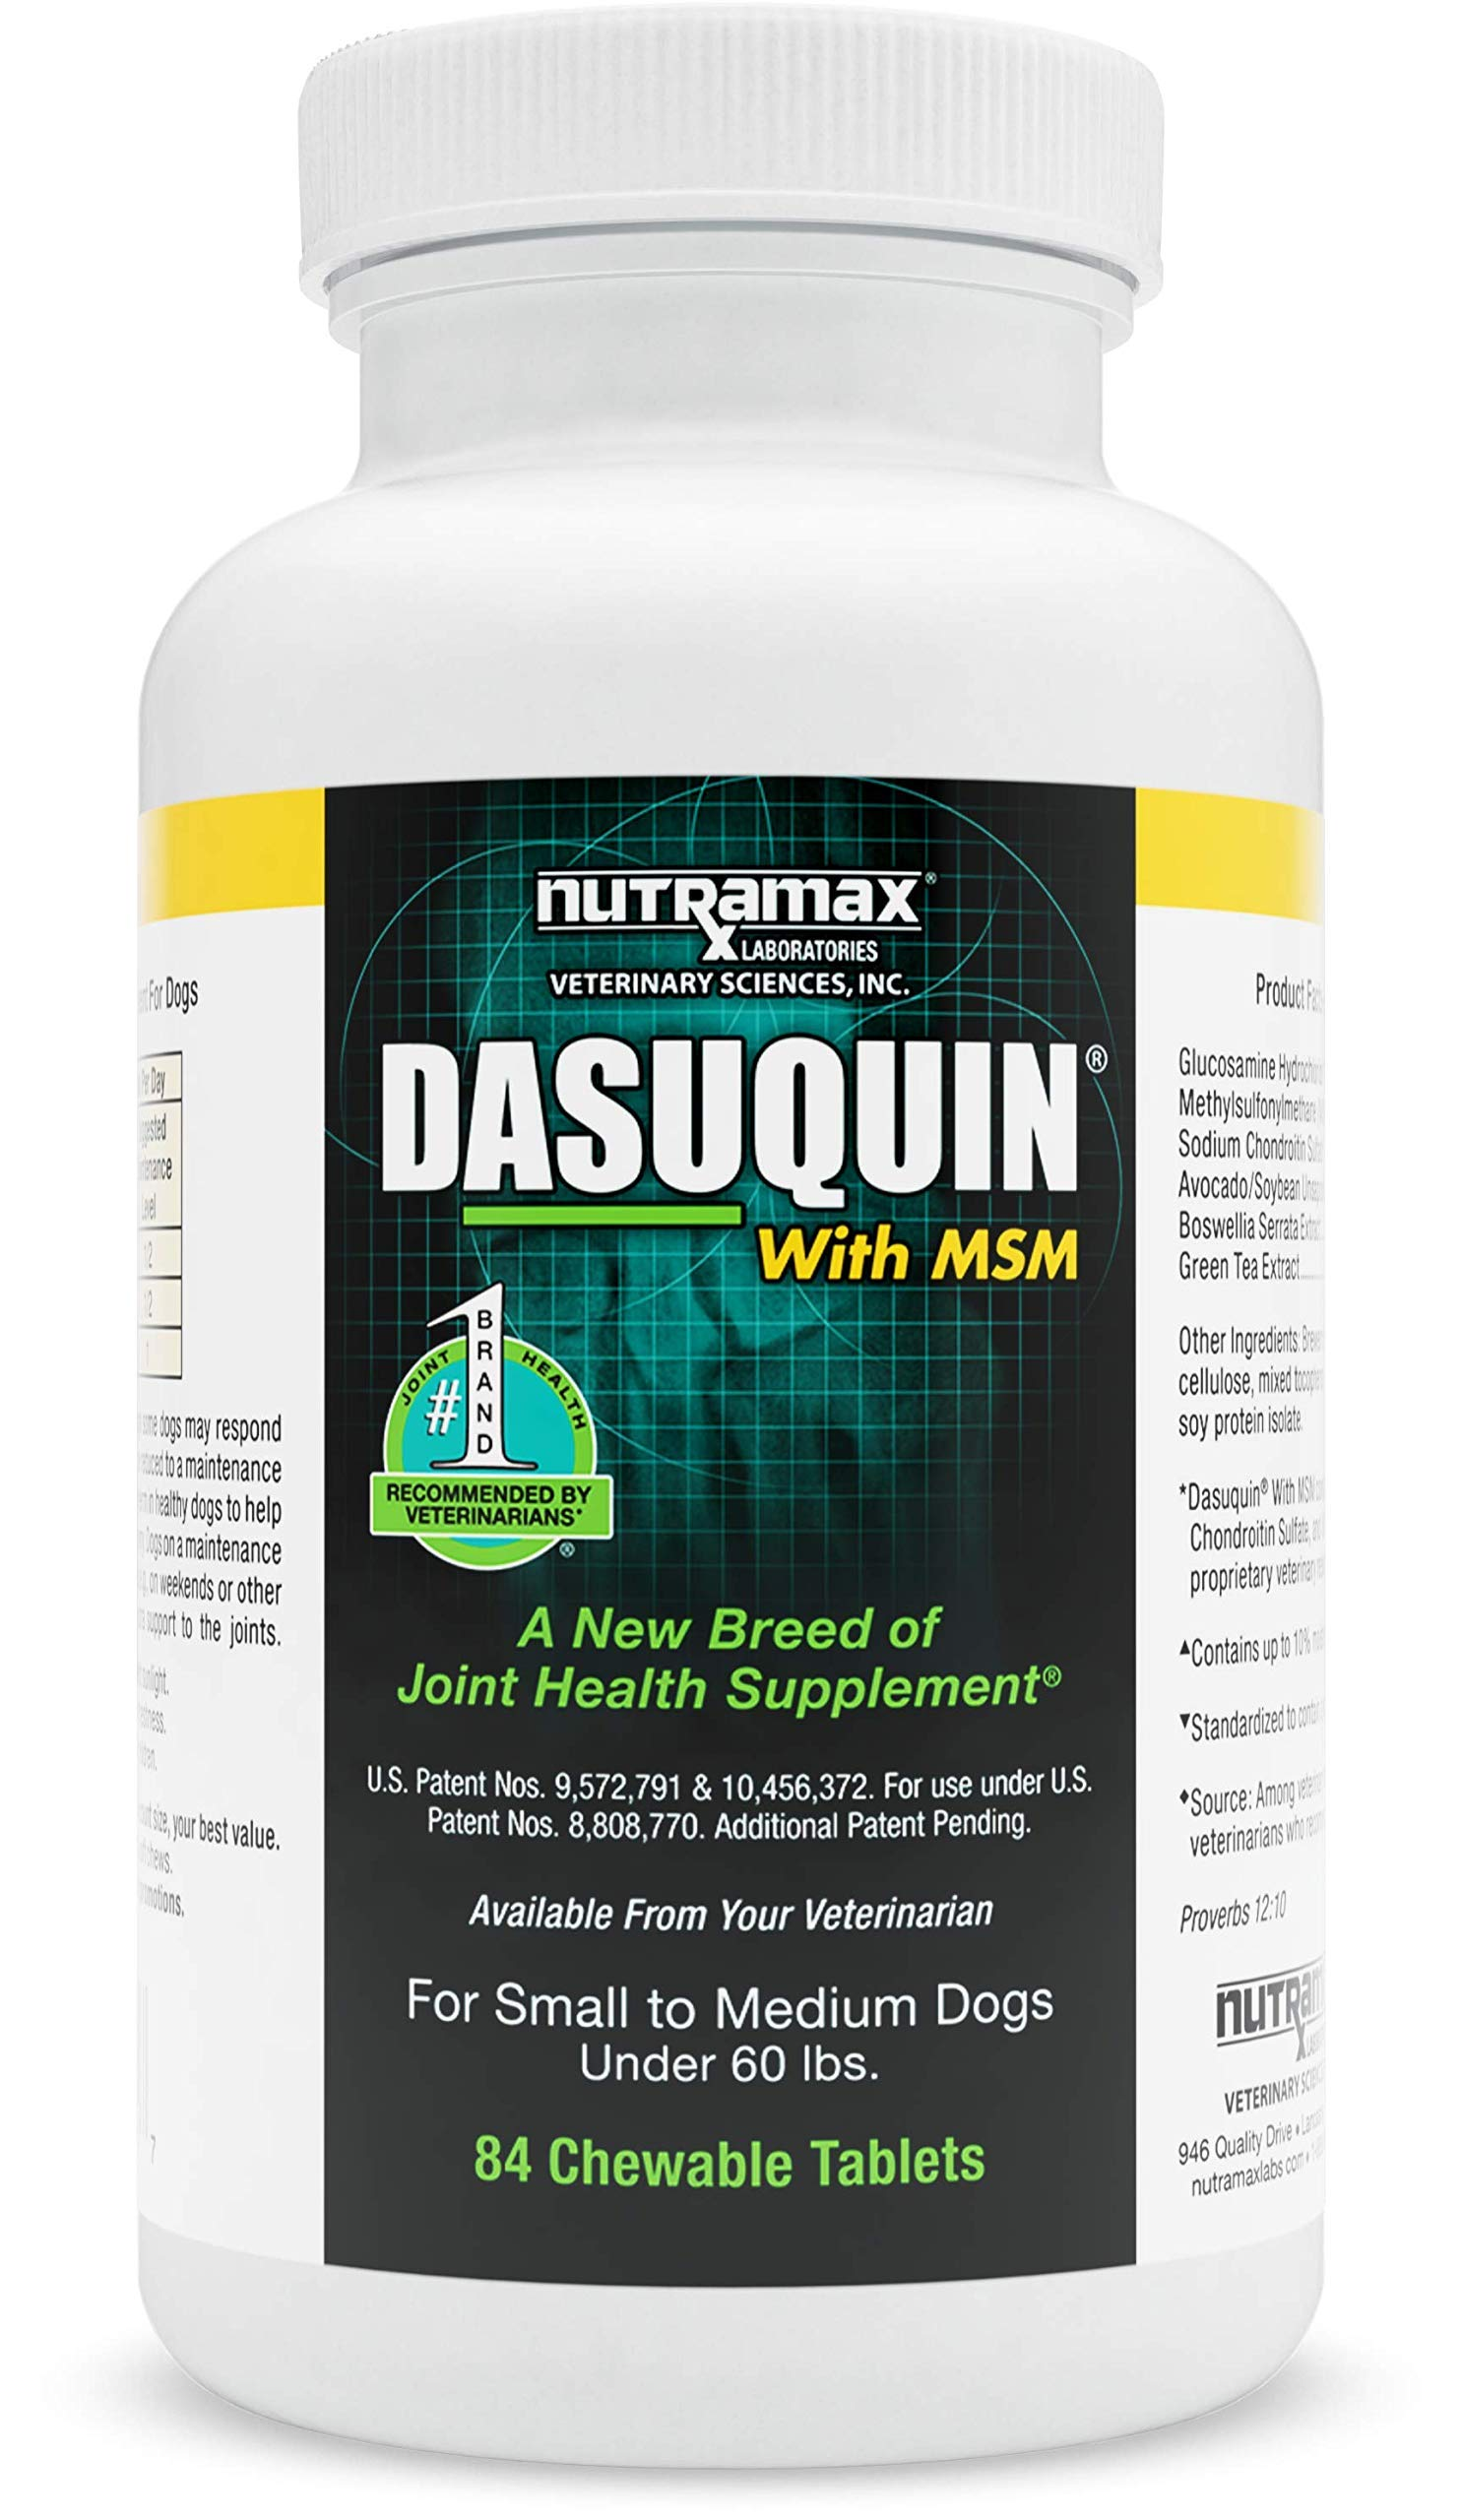 Nutramax Dasuquin with MSM Chewables, Large Dog